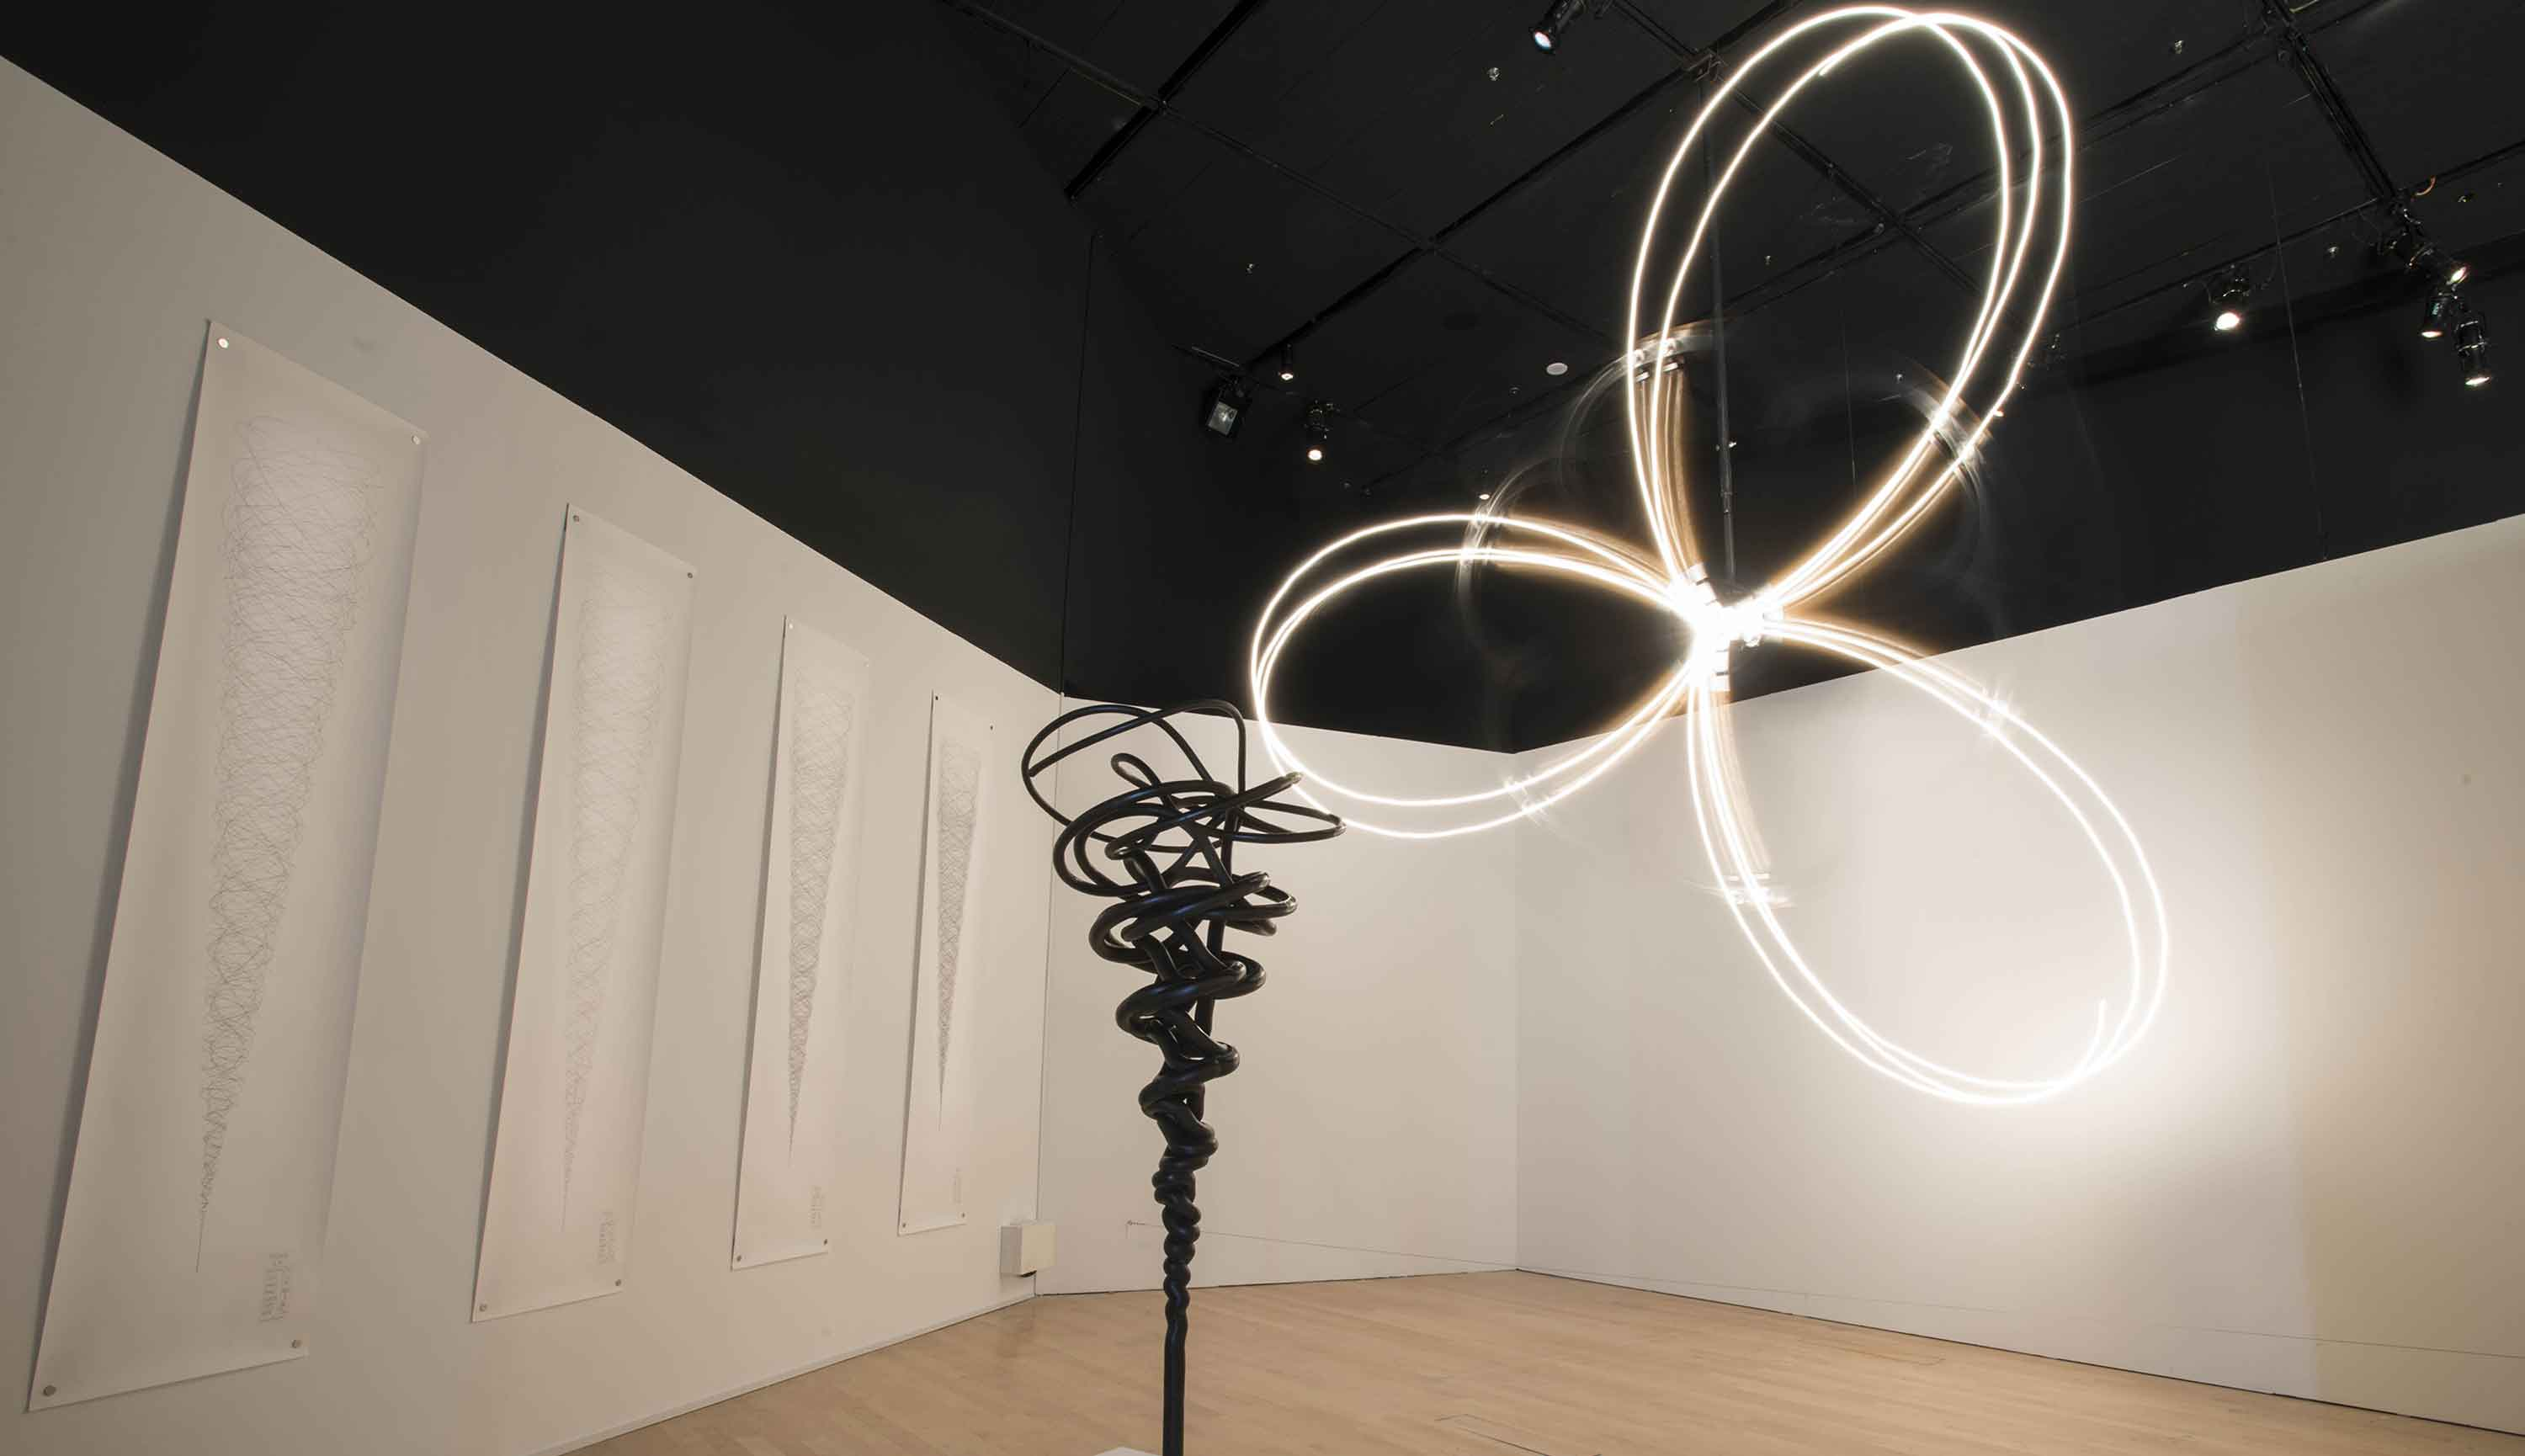 2011 年 Conrad Shawcross《Projections of the Perfect Third》画廊图片